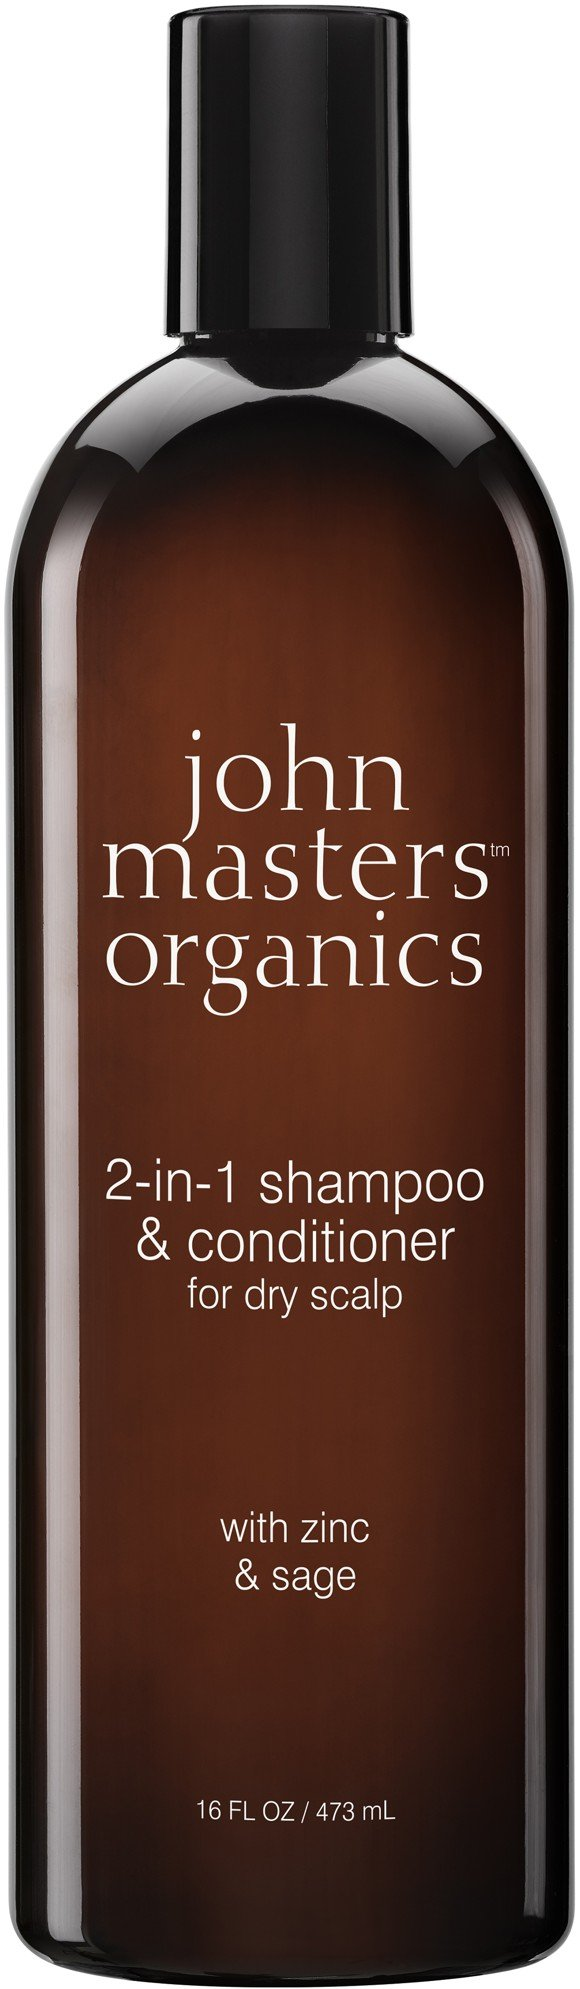 John Masters Organics - Zinc & Sage  Shampoo With Conditioner 473 ml